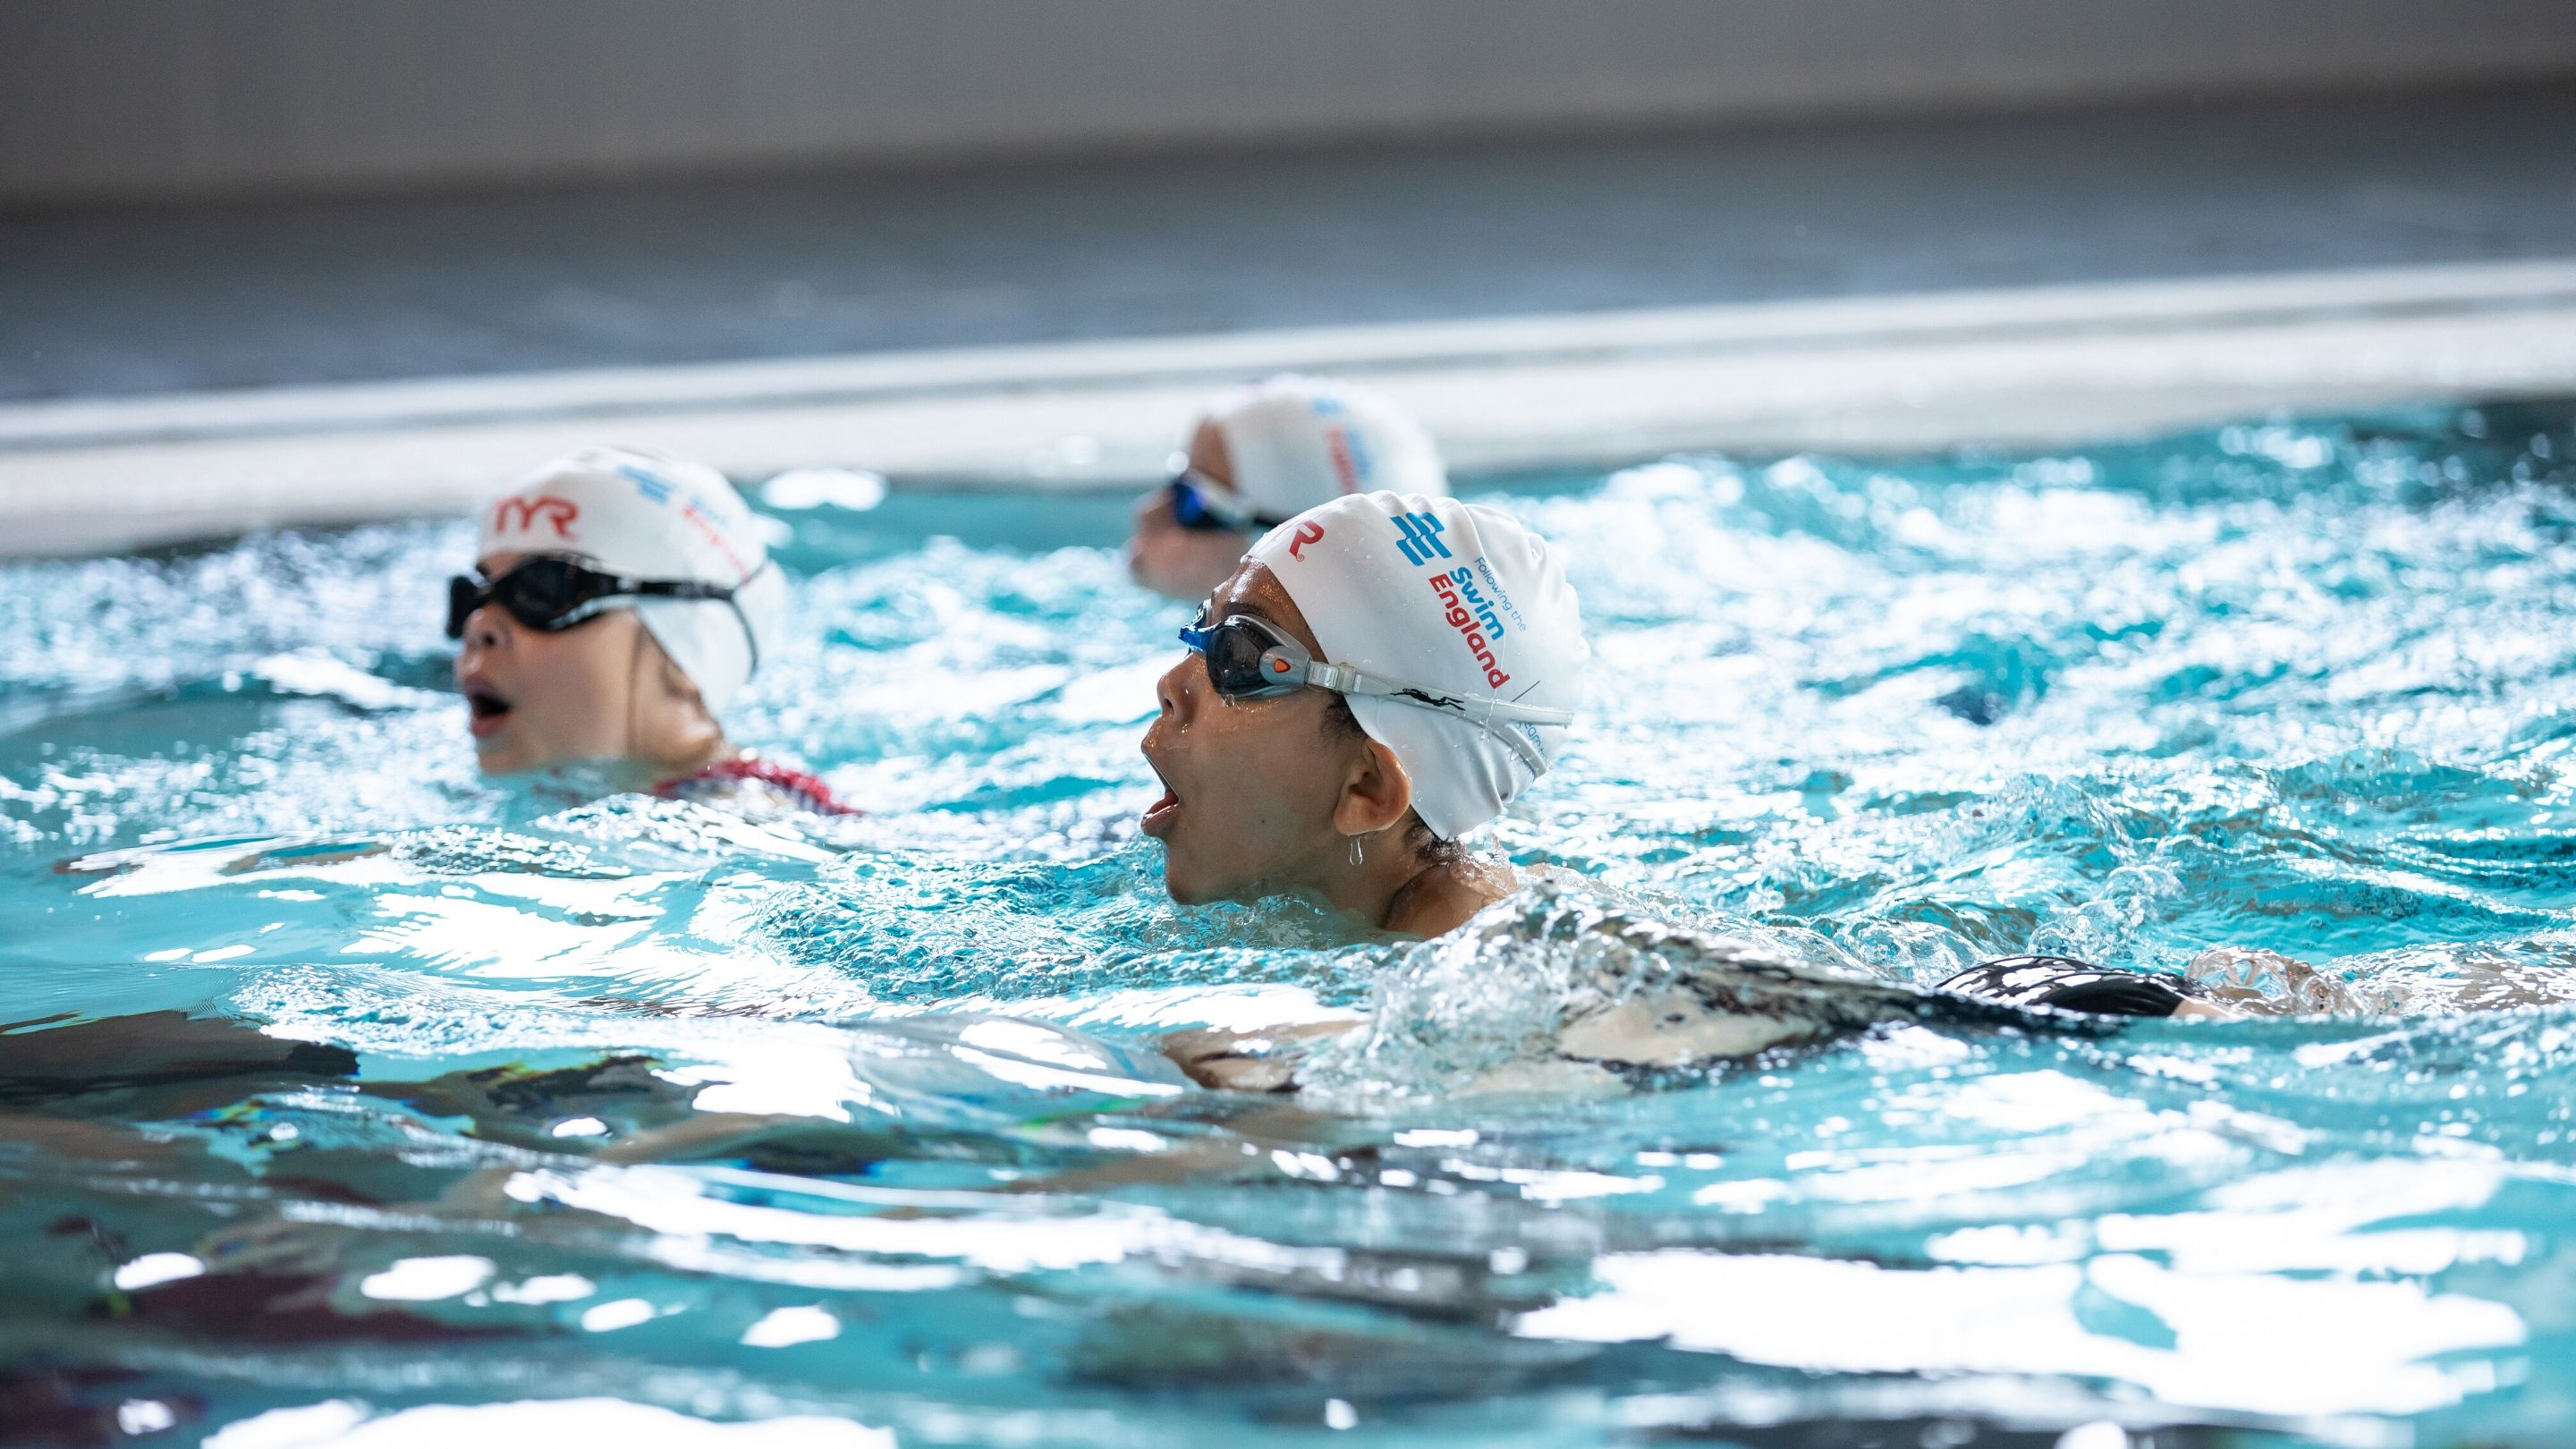 Basics of Breaststroke and Butterfly